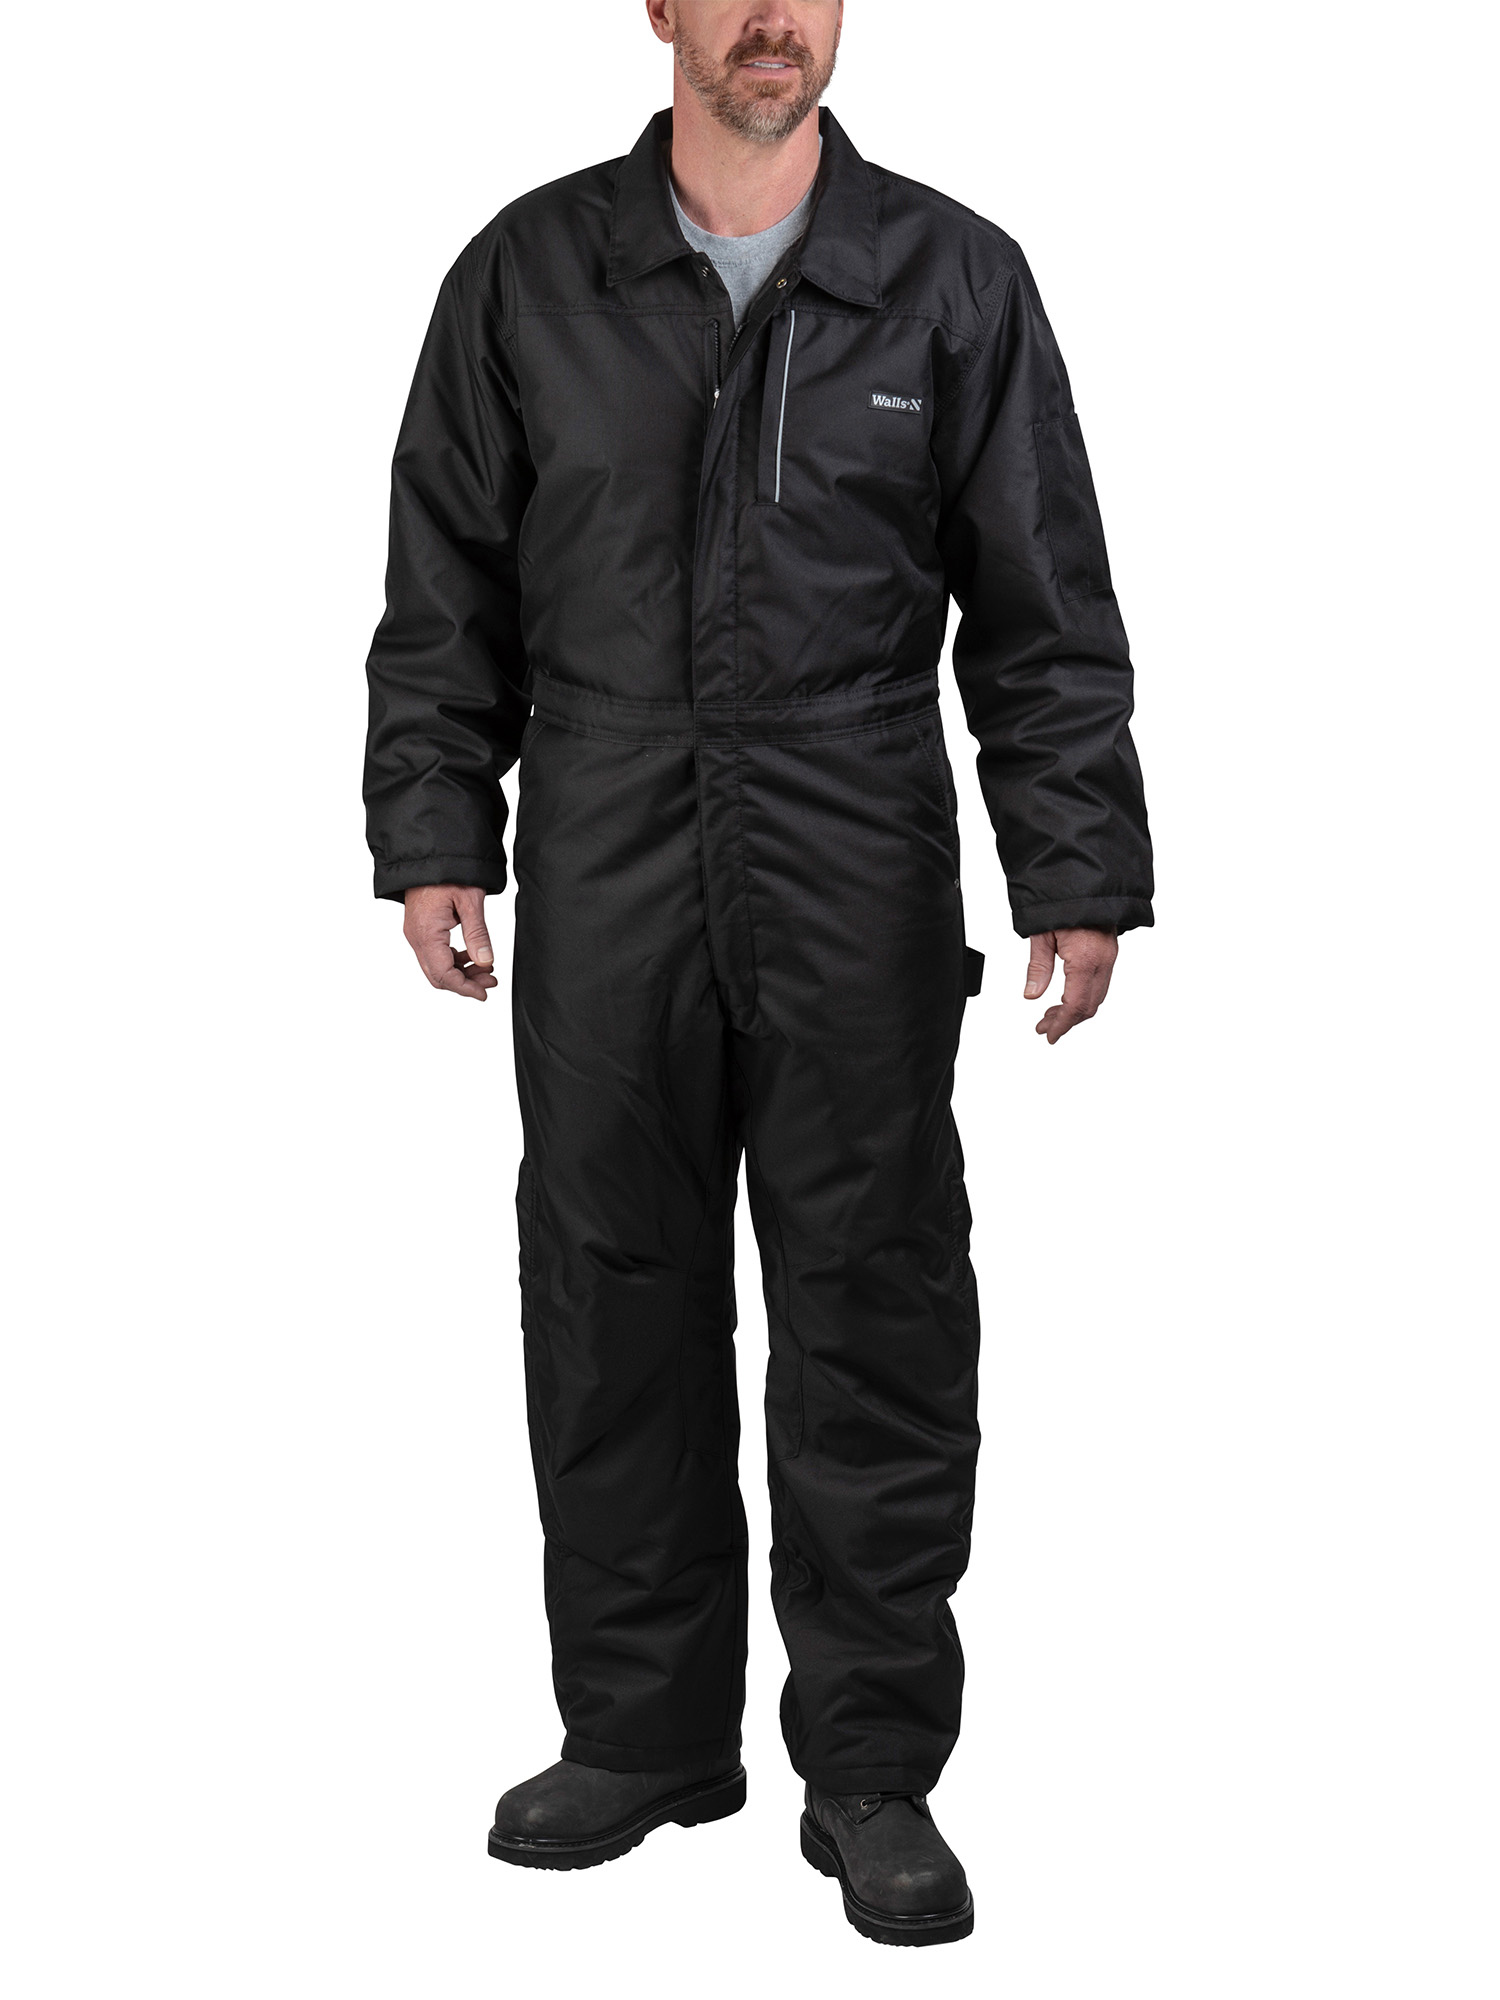 Walls Men's Poly Duck Insulated Coverall